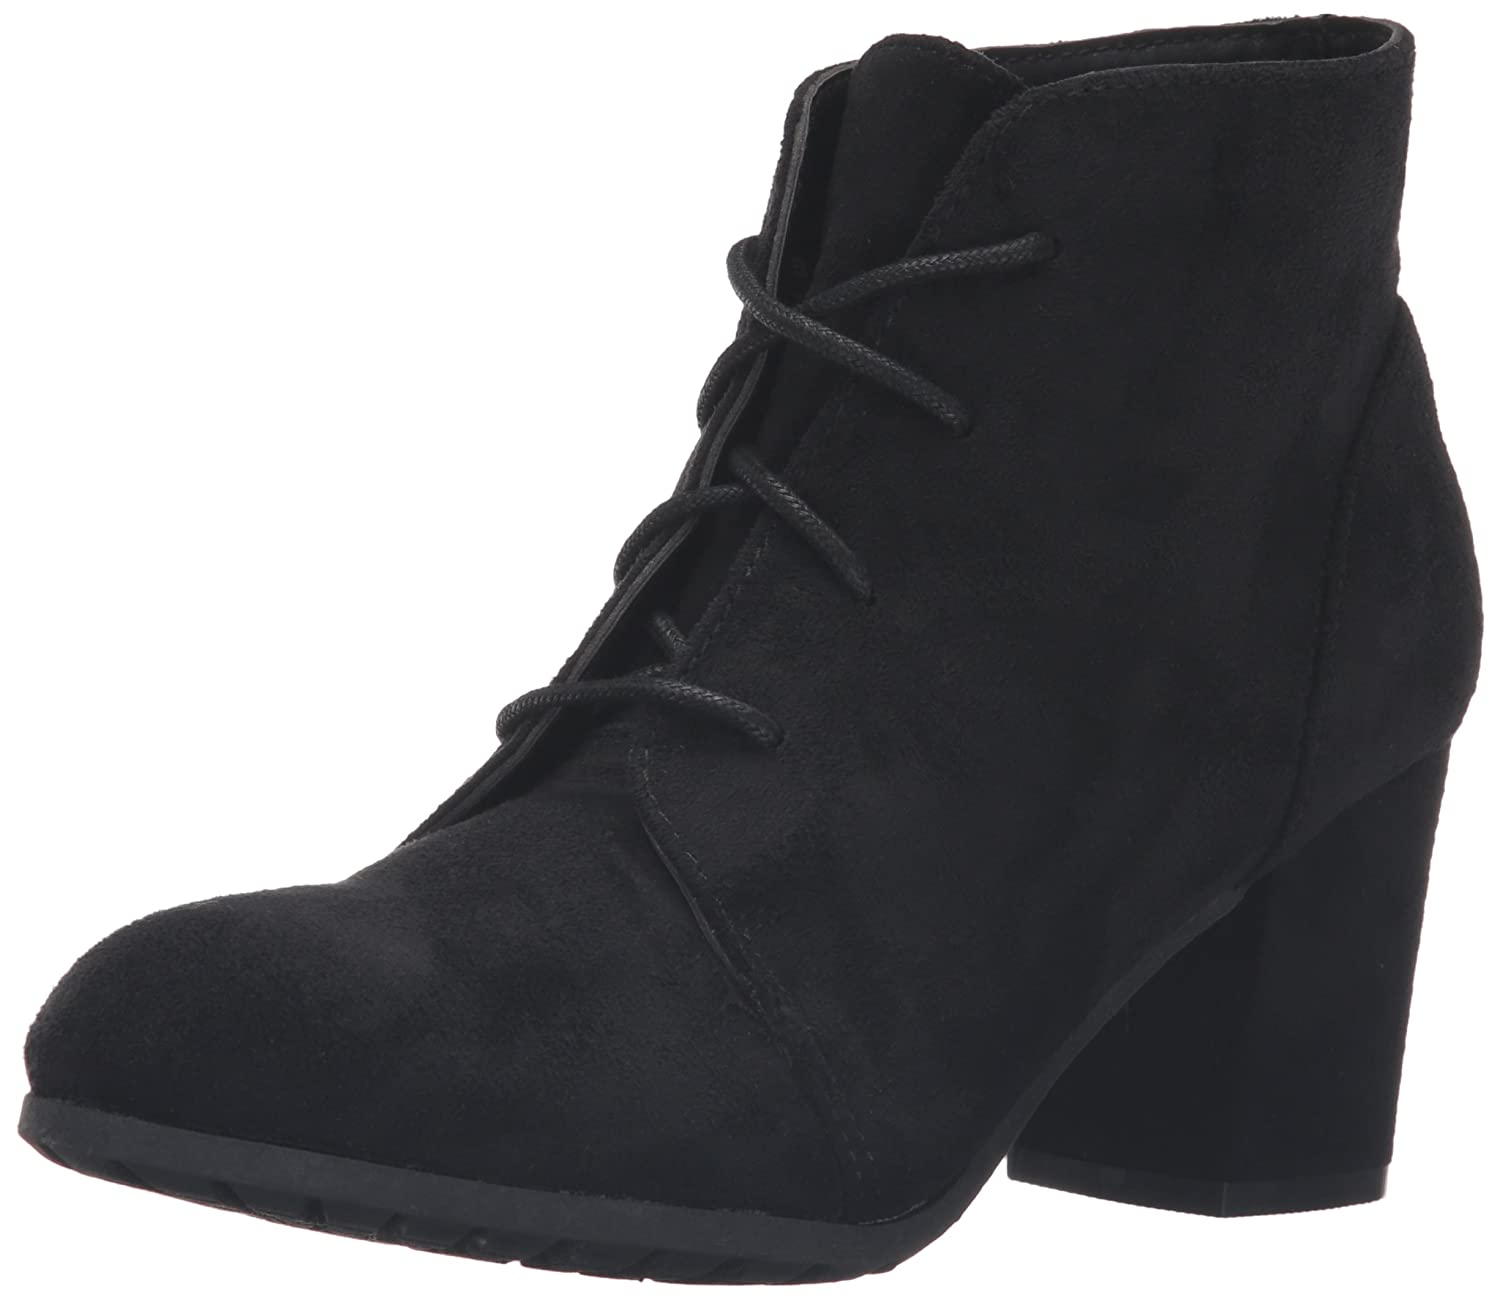 Madden Girl Women's Torch Ankle Bootie B01E9VKIO8 10 B(M) US|Black Fabric